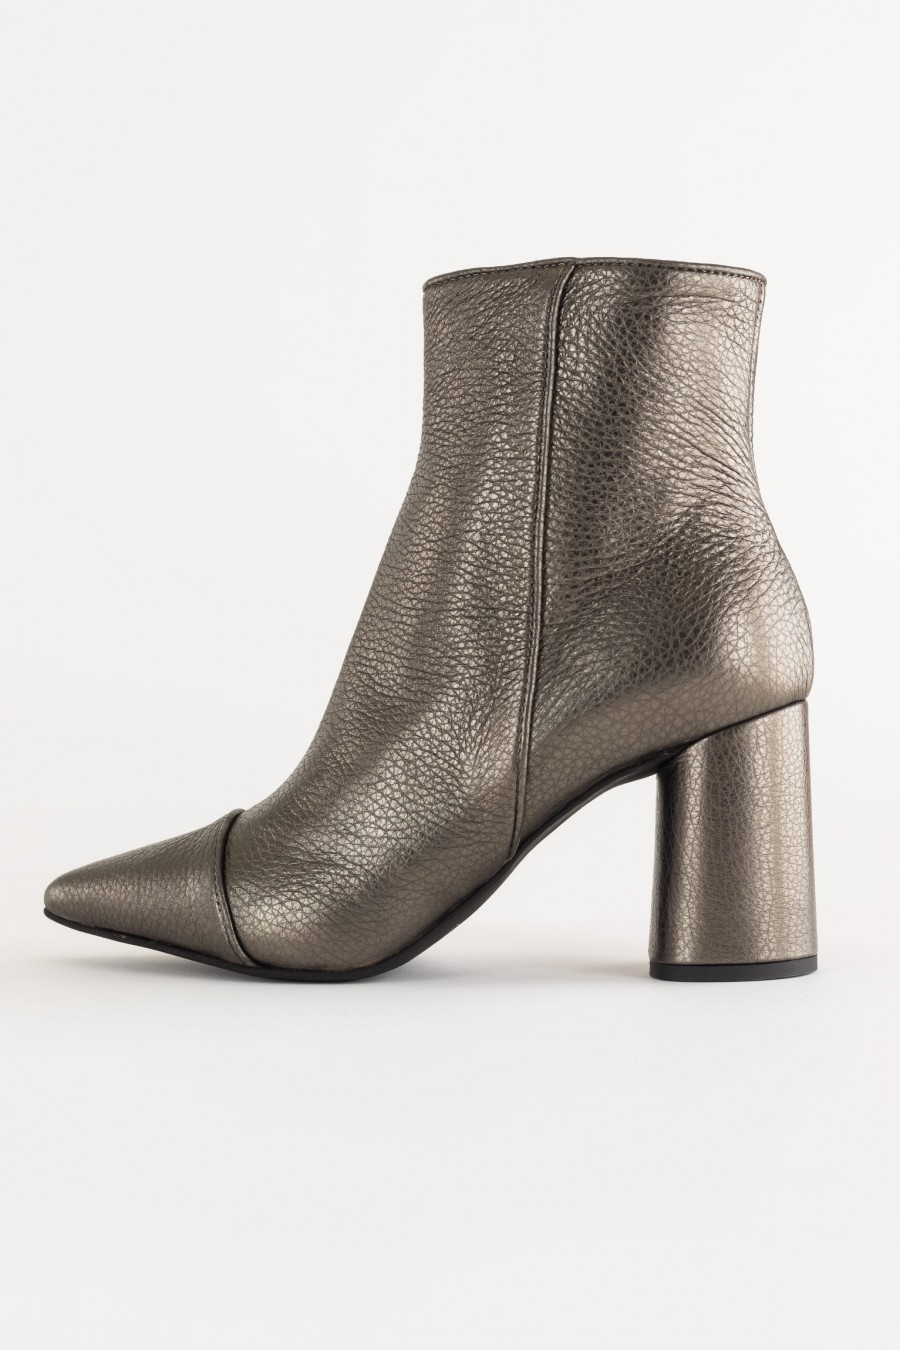 Metallic effet leather boots